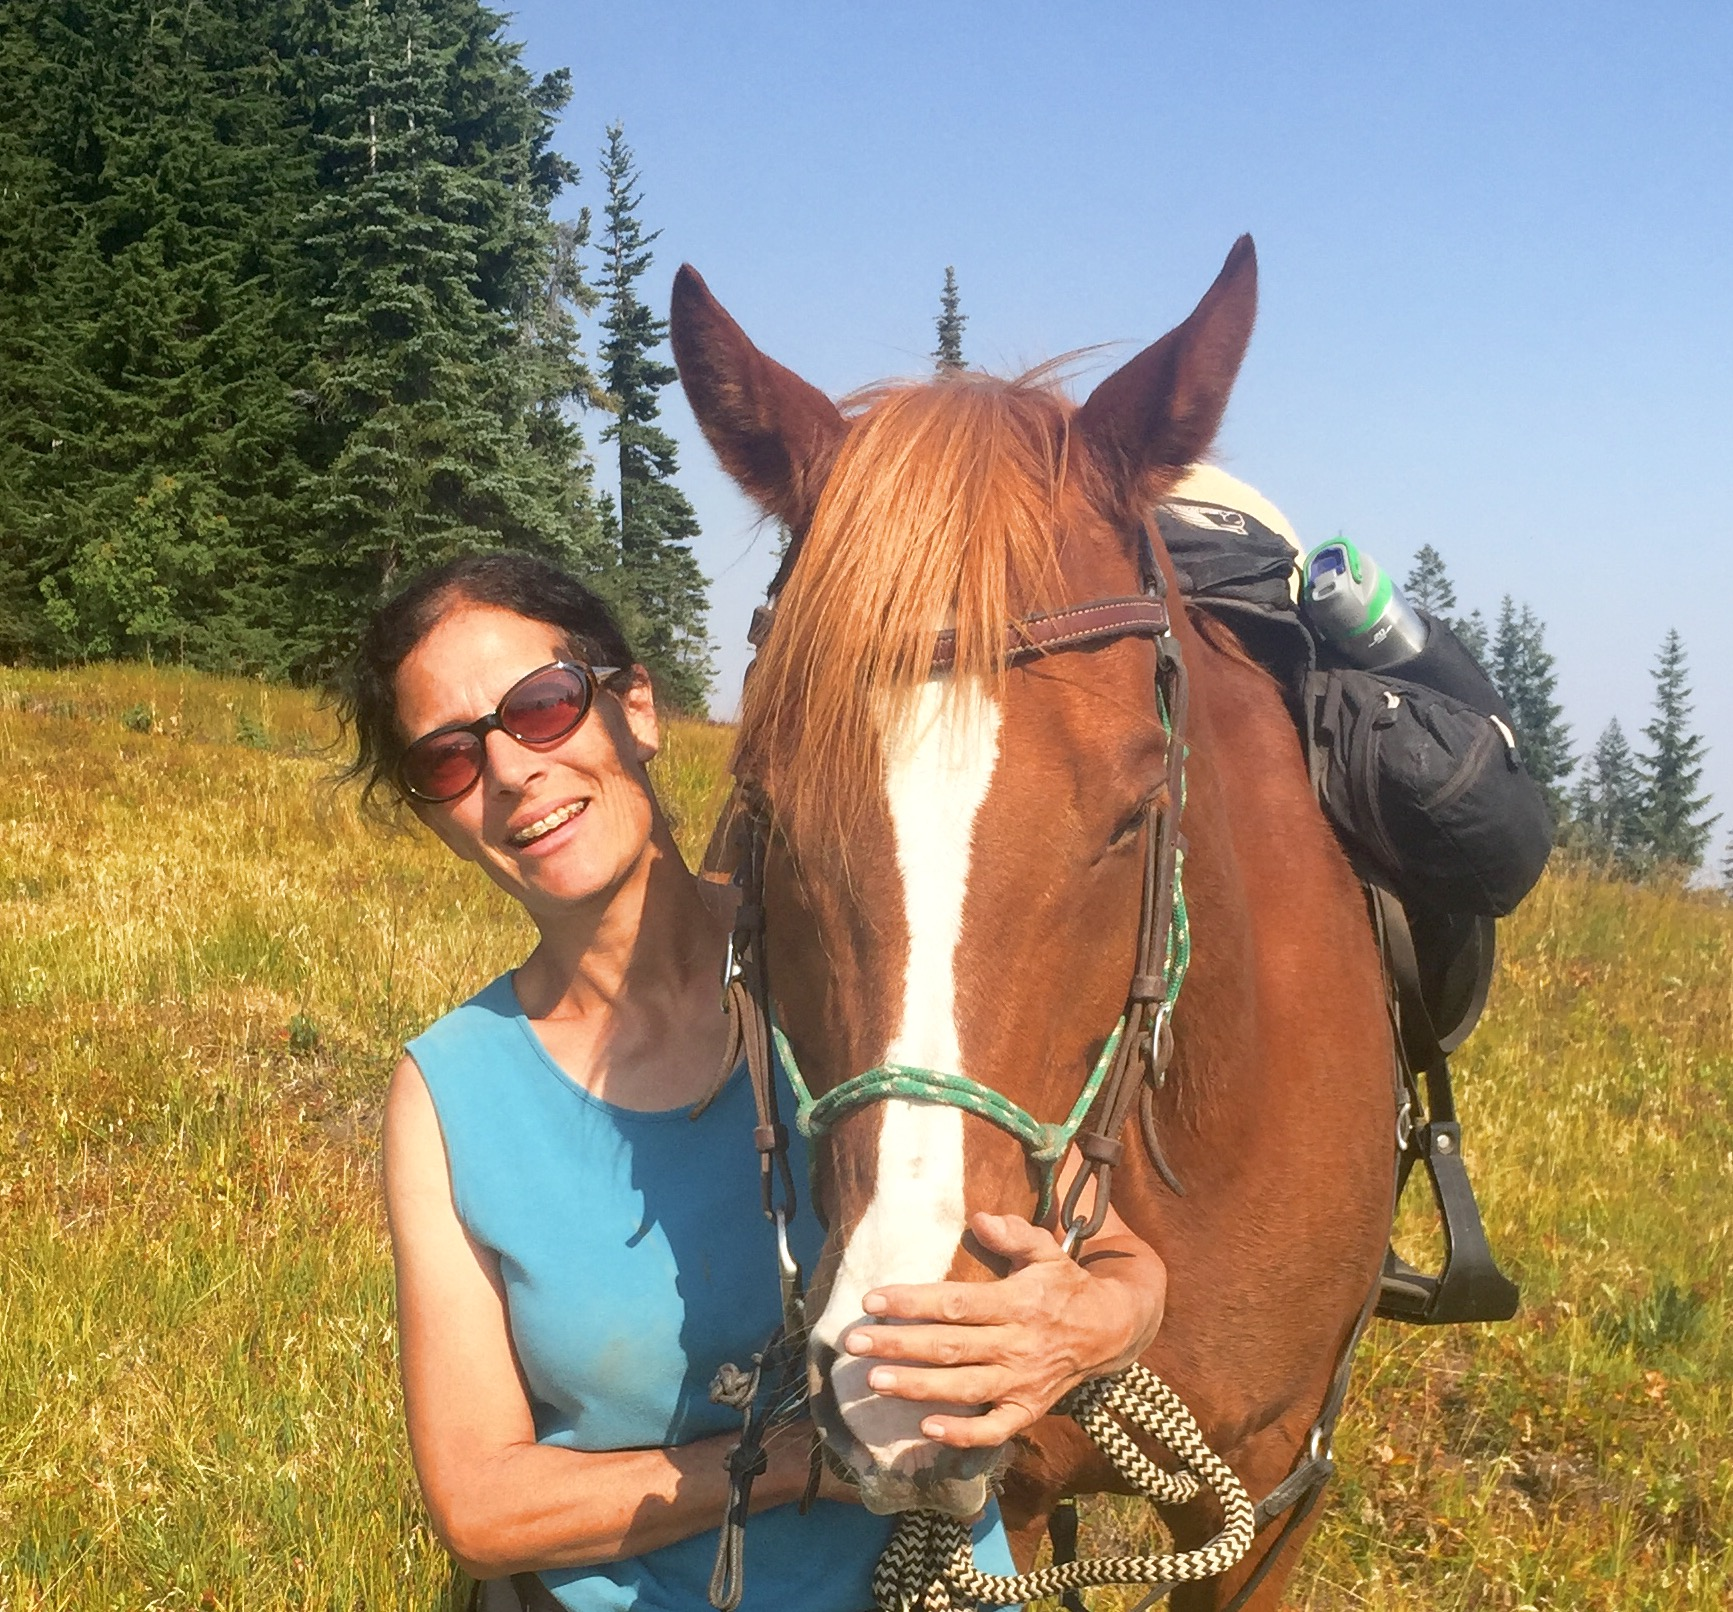 Happy Trails Horse Massage for your equine friend!